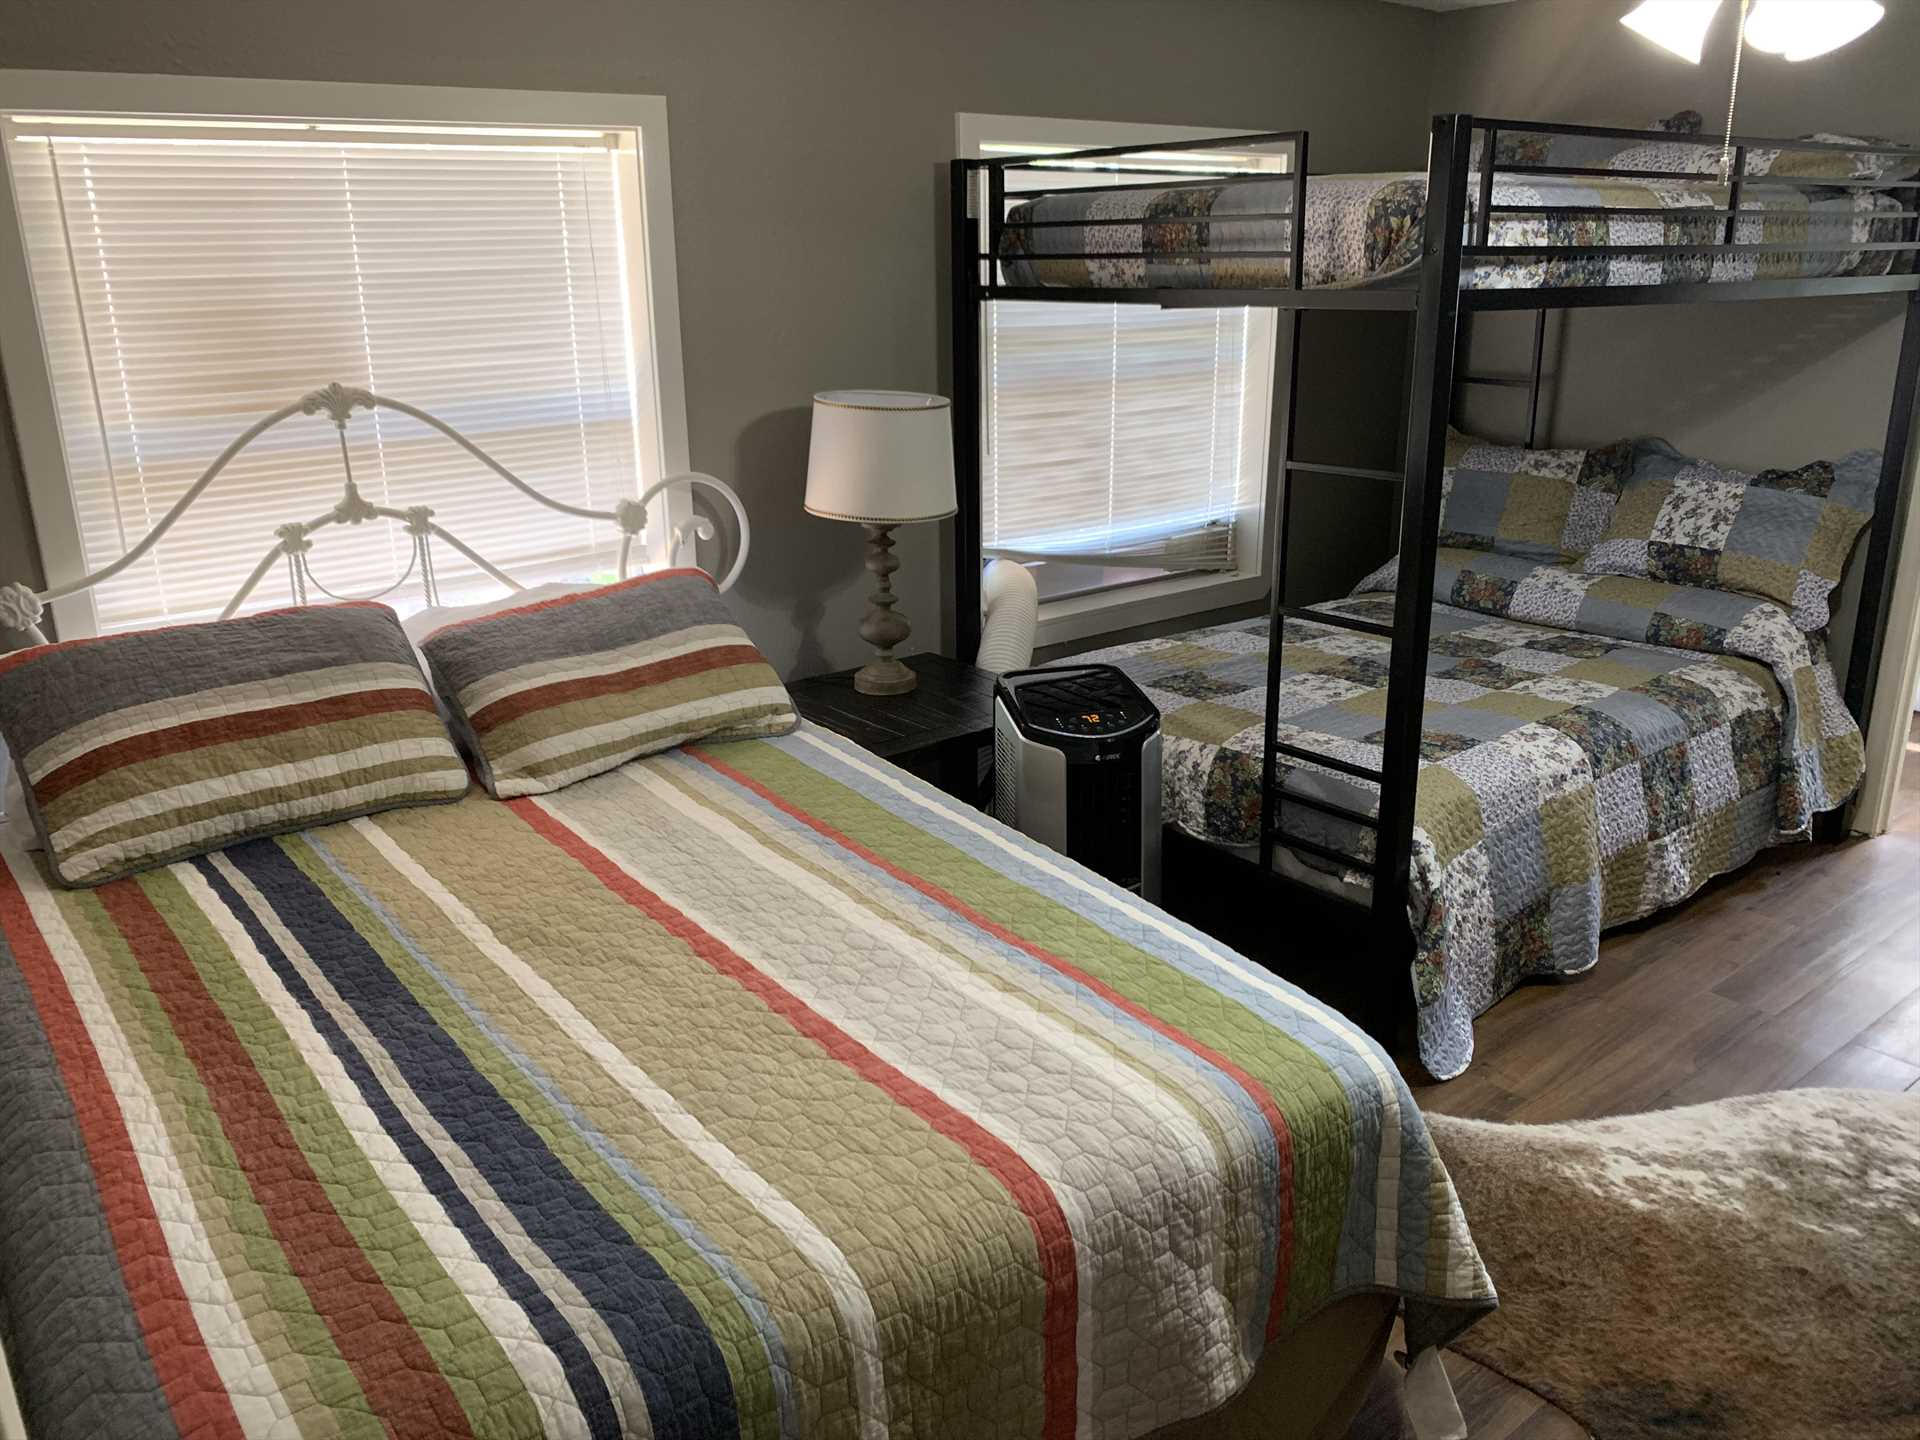 The second bedroom comfortably sleeps up to five with a queen bed, and a bunk-style setup with a double under and a twin up top.